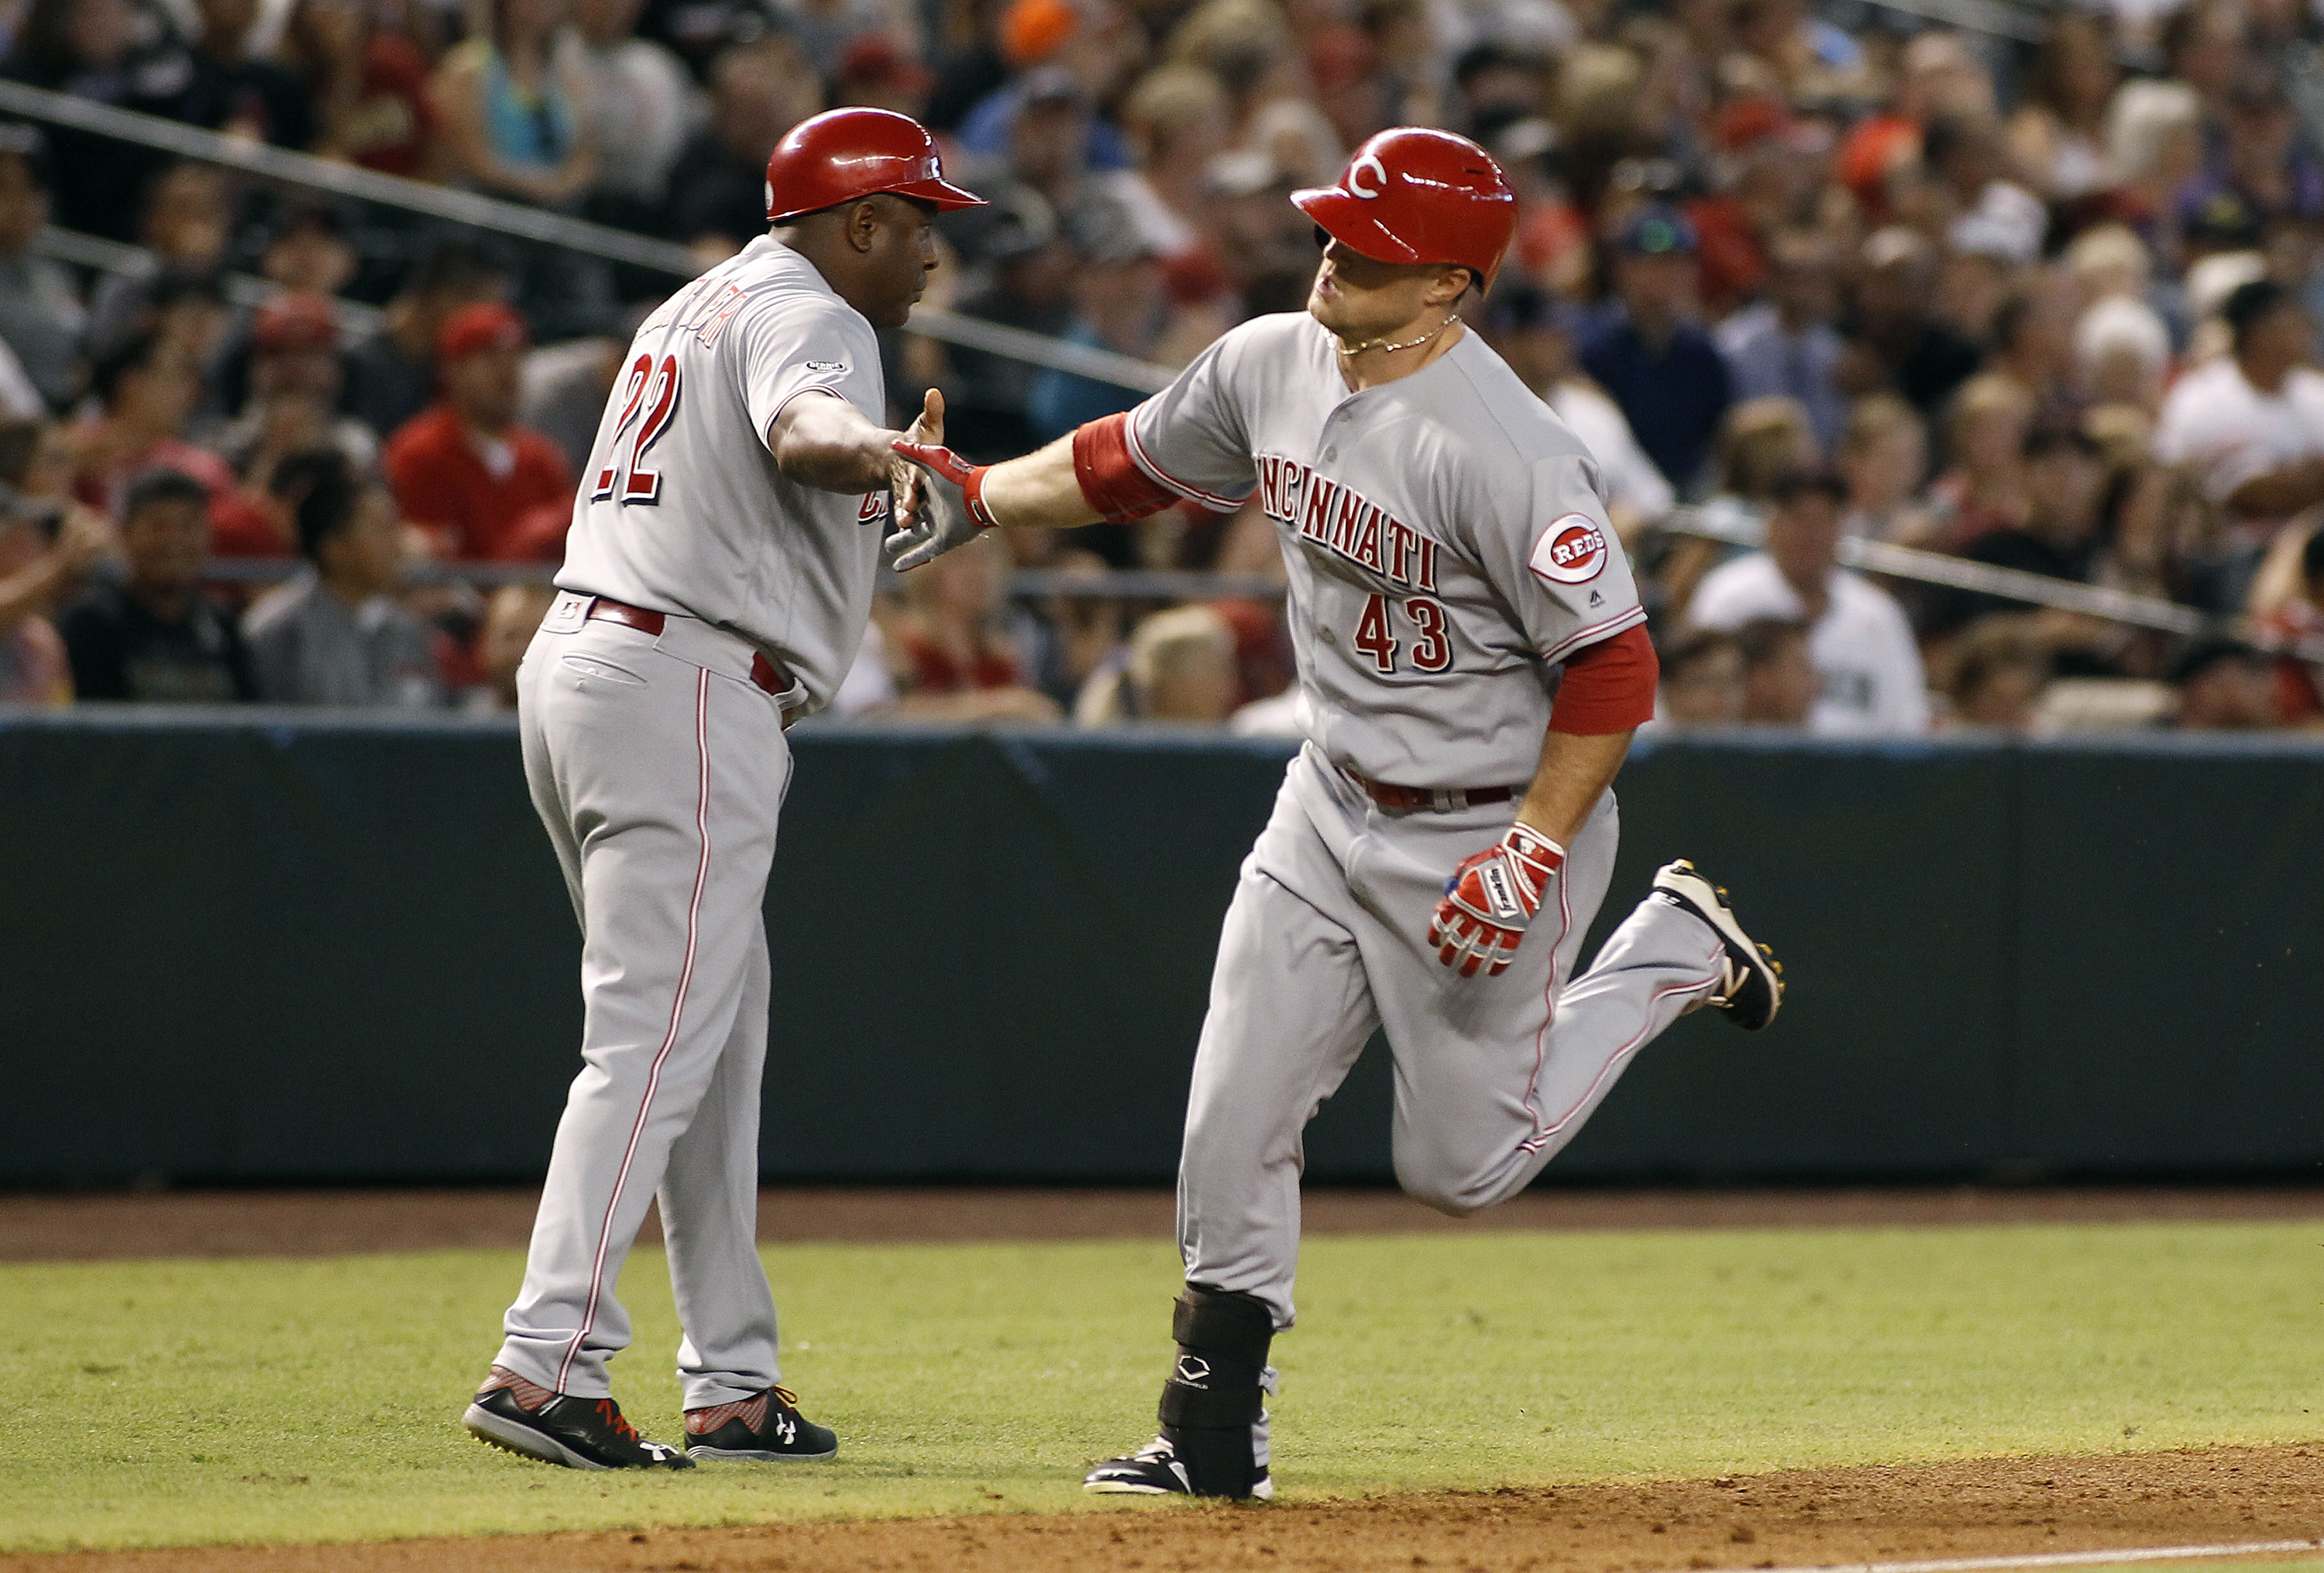 Cincinnati Reds' Scott Schebler (43) is congratulated by third base coach Billy Hatcher as he rounds the base after hitting a three-run home run against the Arizona Diamondbacks during the second inning of a baseball game, Saturday, Aug. 27, 2016, in Phoe